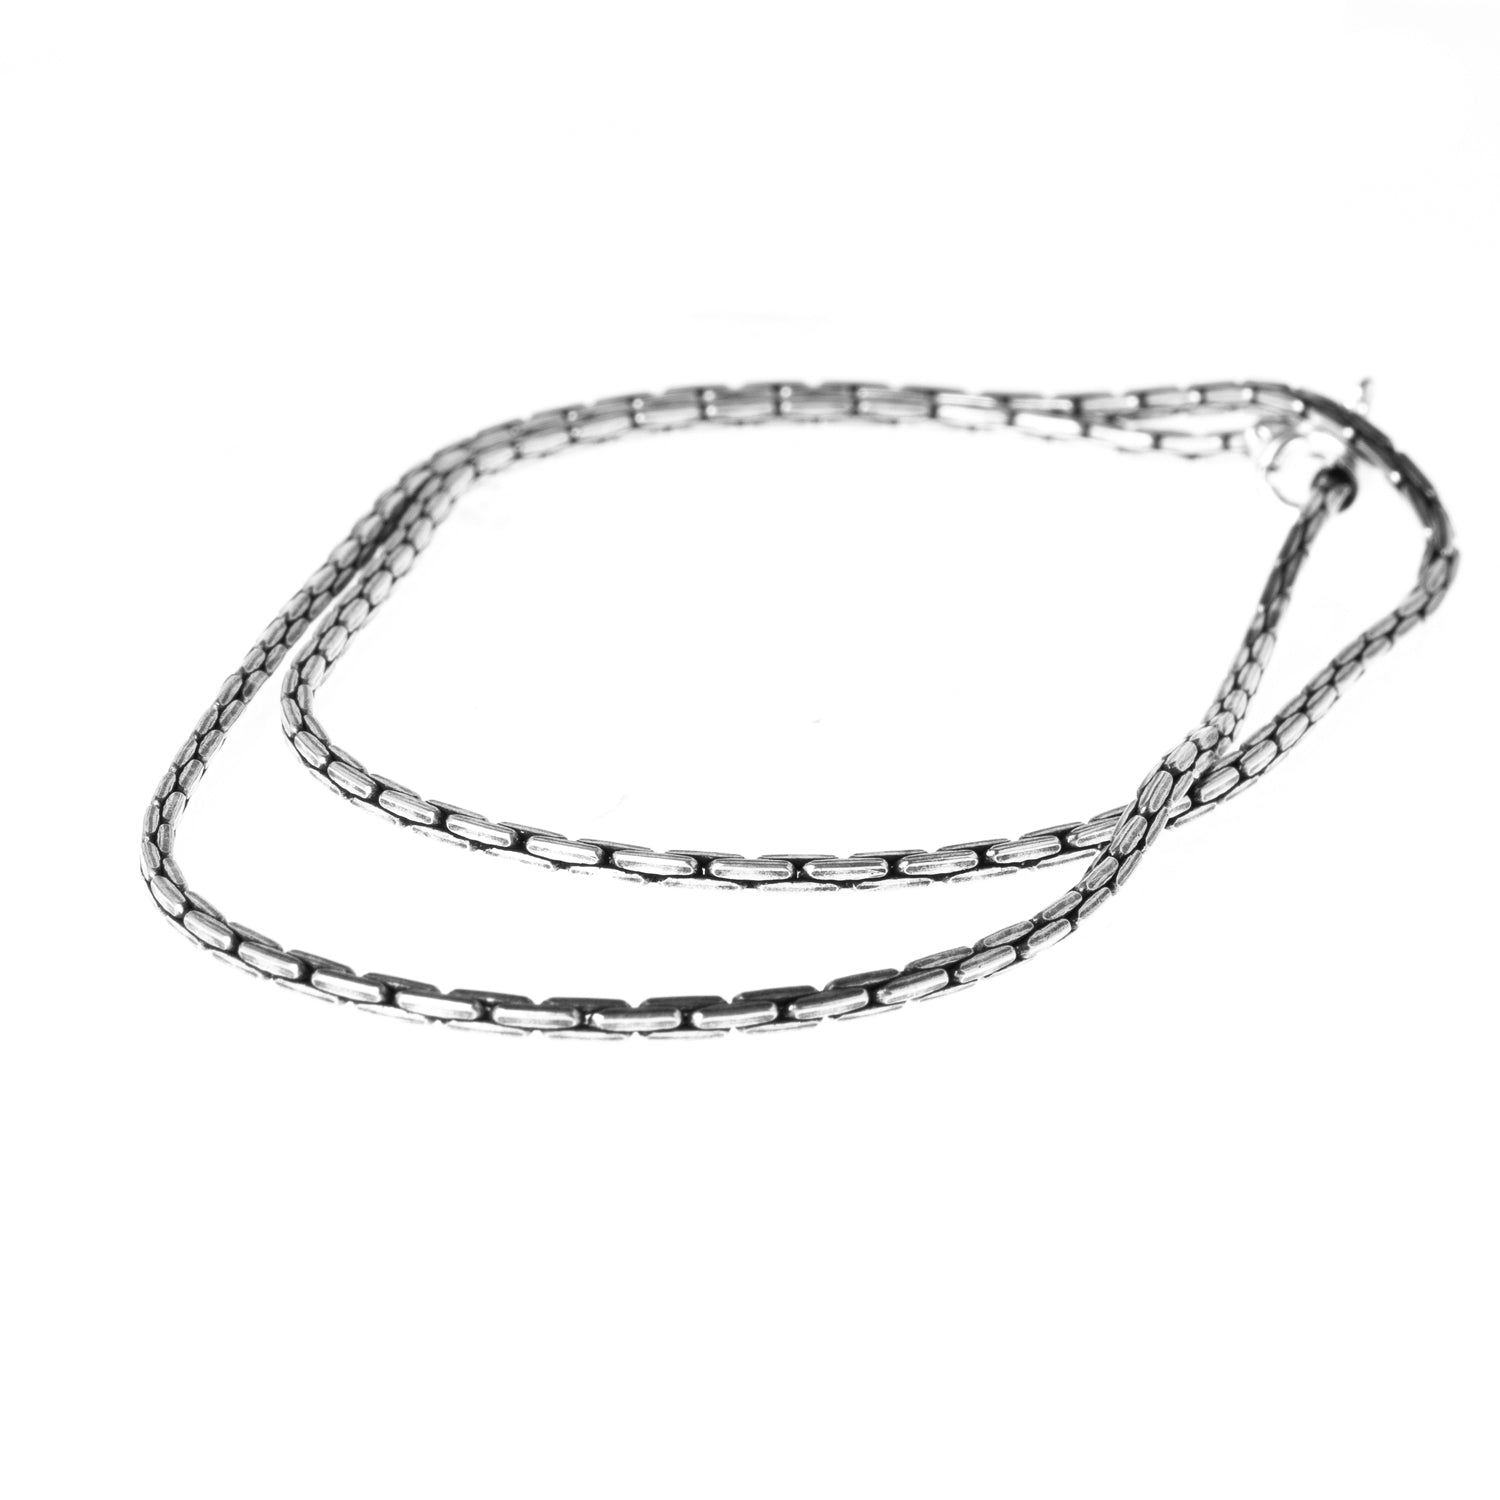 Sterling Silver Tight Cable Chain C-7950